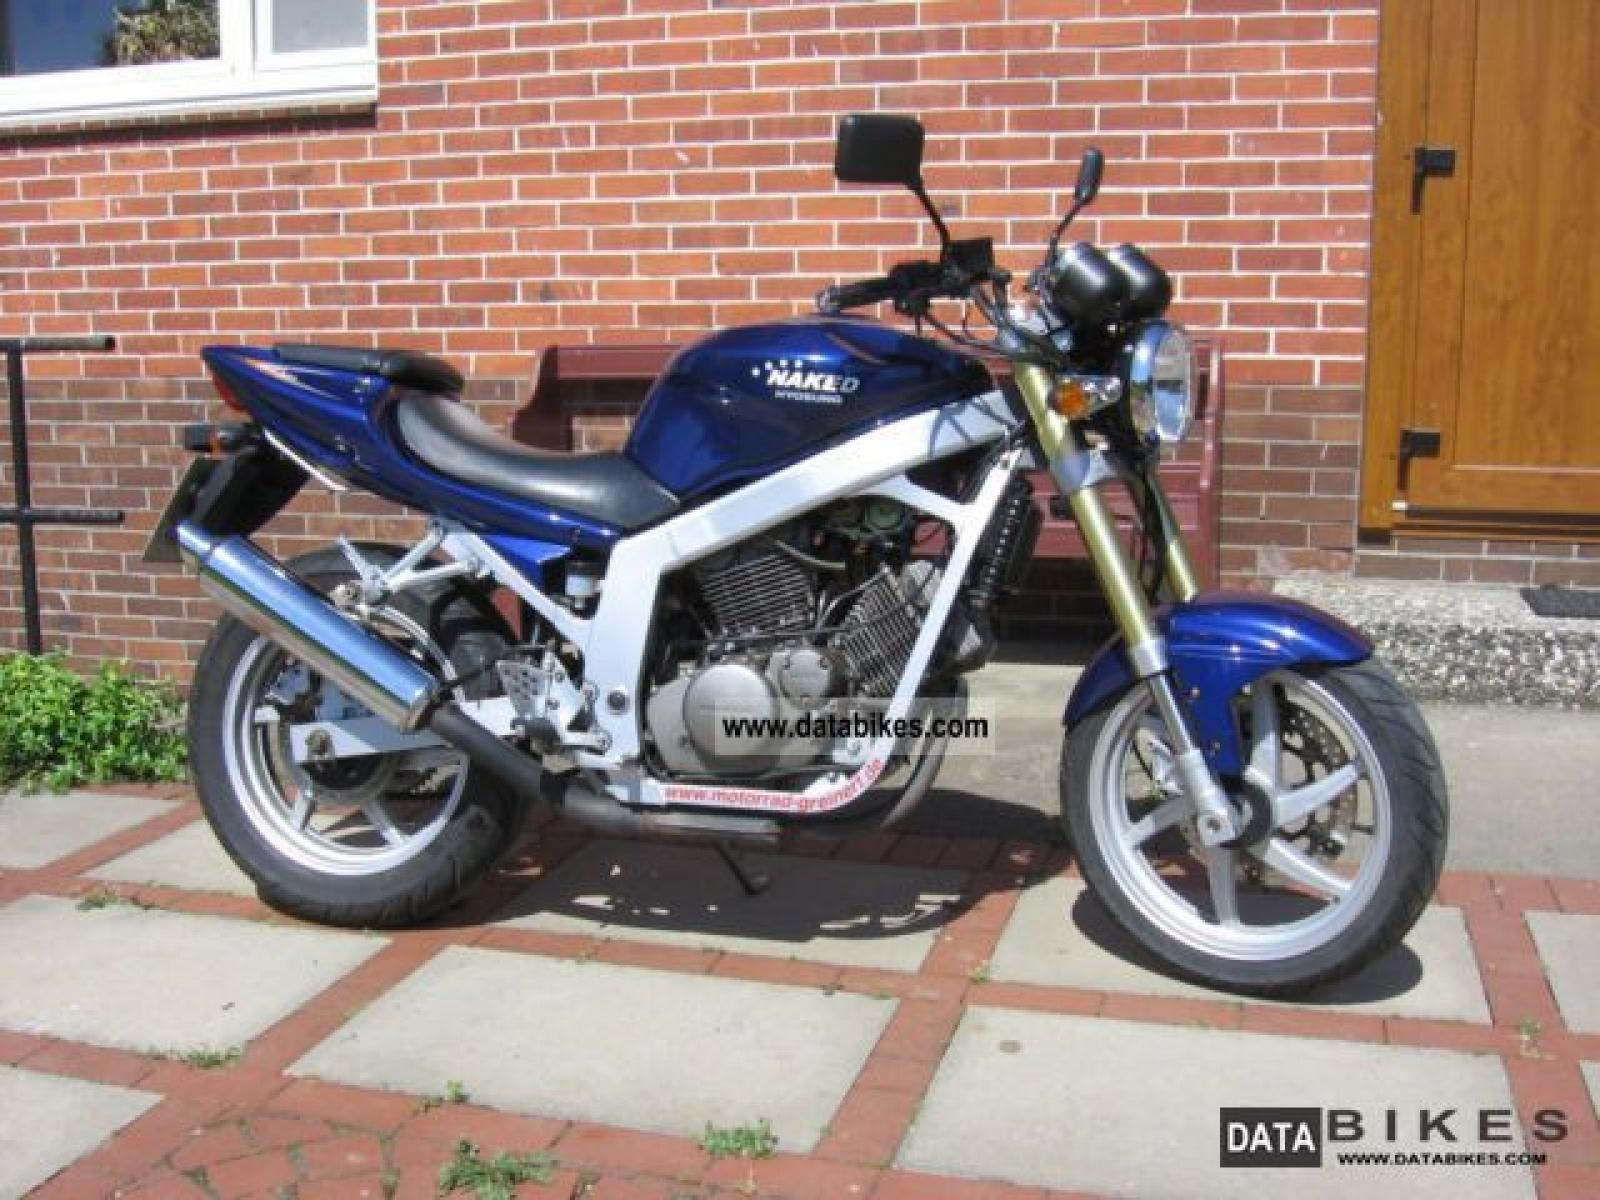 2007 Hyosung GT250 comet naked motorcycle | Motorcycles